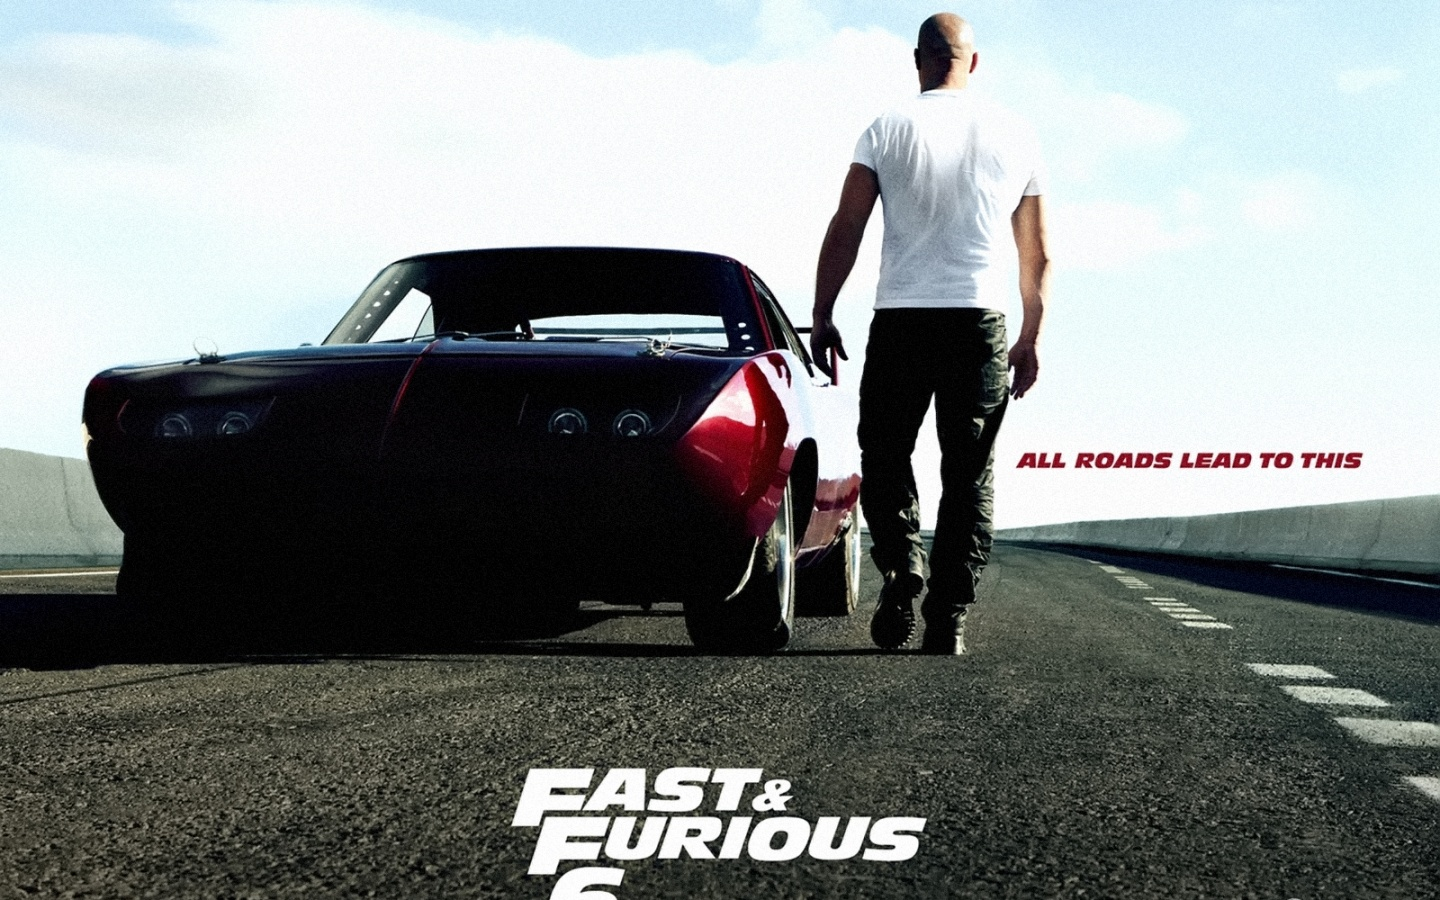 1440x900 Fast Furious 6 Movie Poster Desktop Pc And Mac Wallpaper